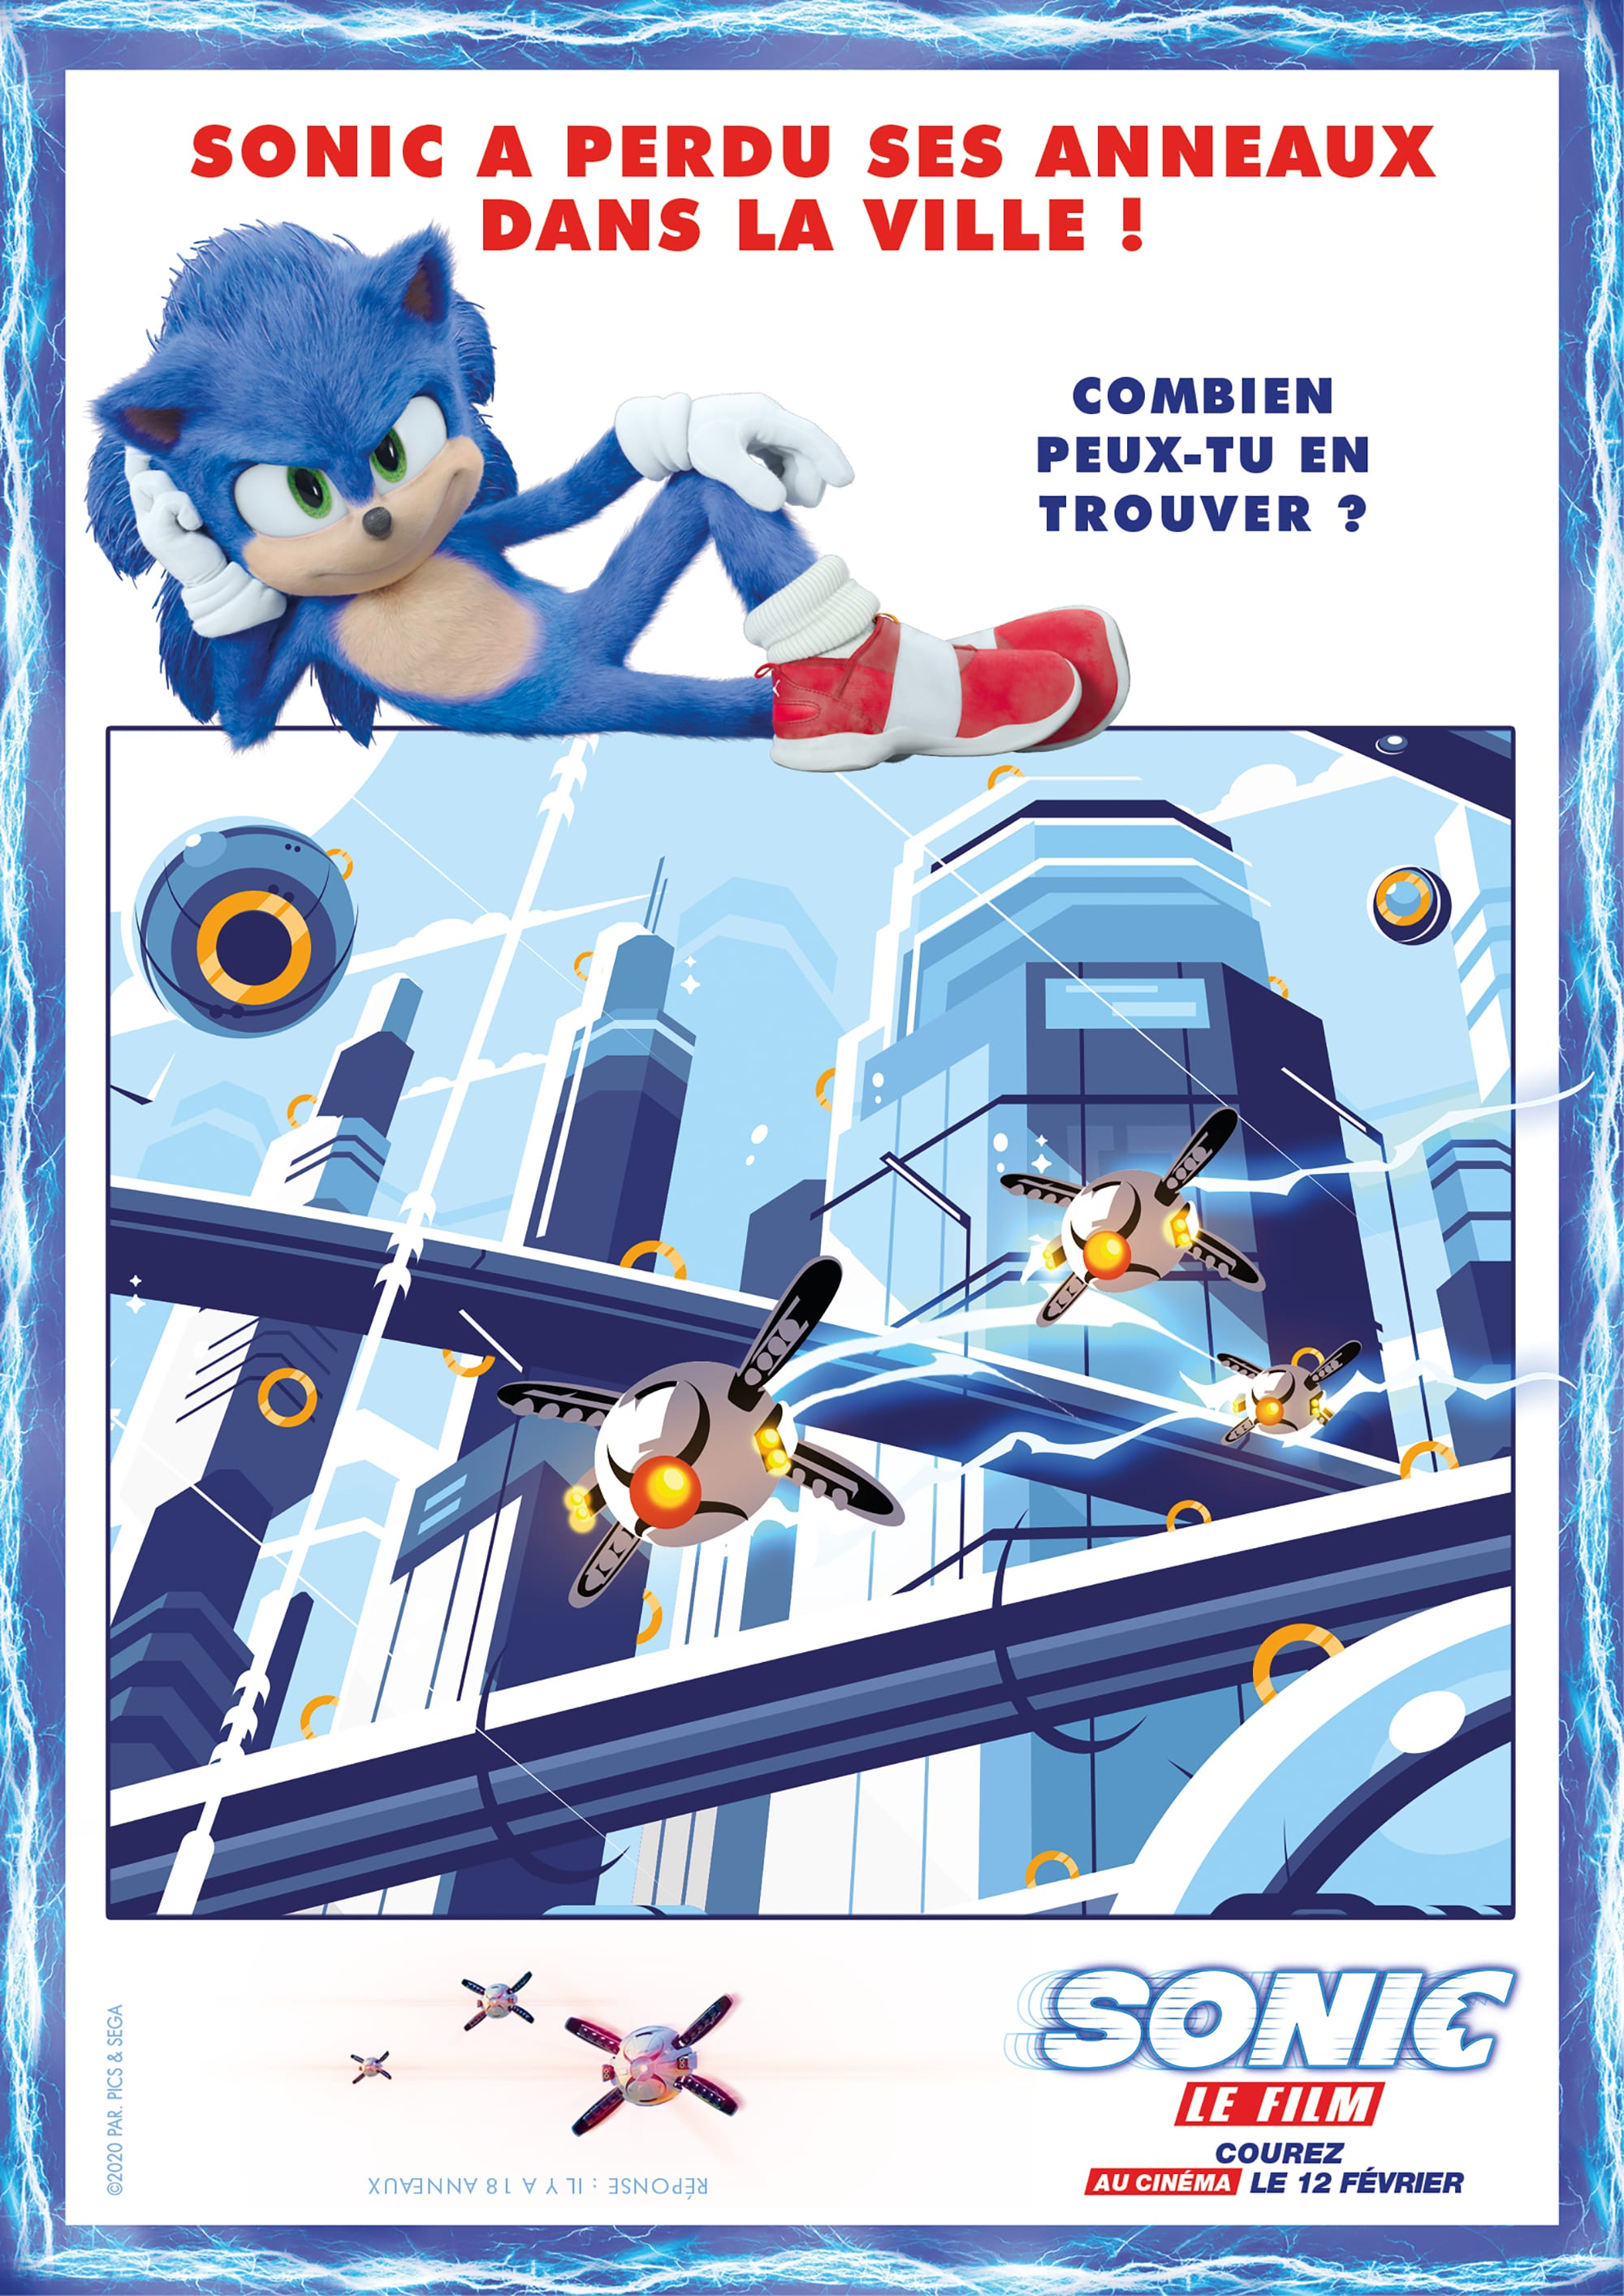 Image 1 of the Sonic Le Film gallery